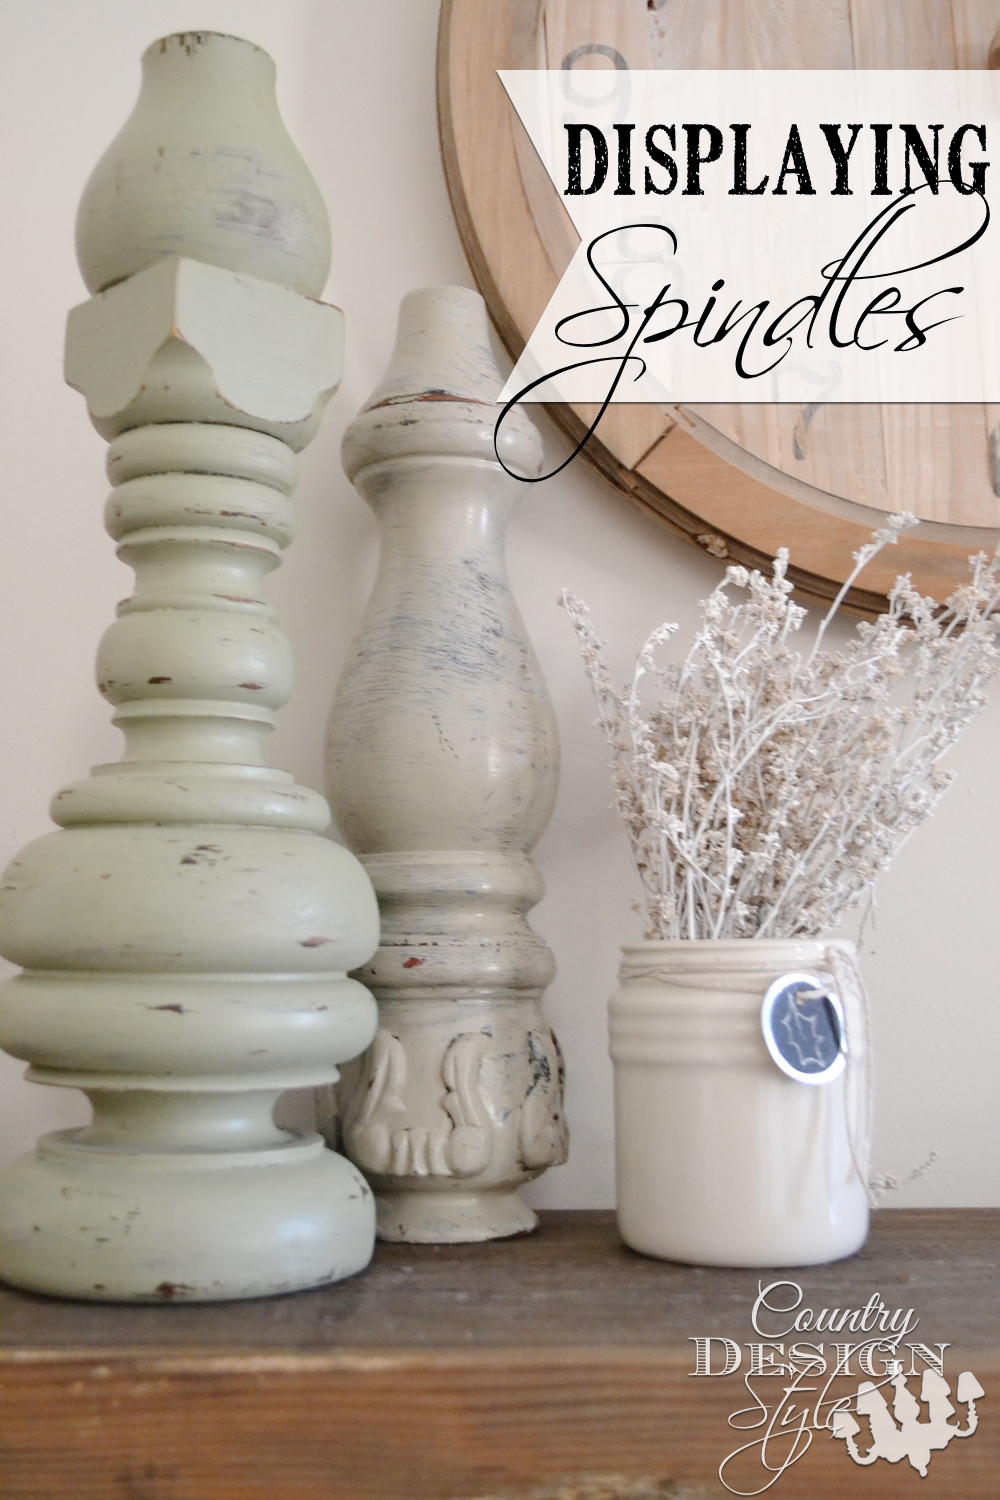 How to display and DIY projects using spindles.  Country Design Style